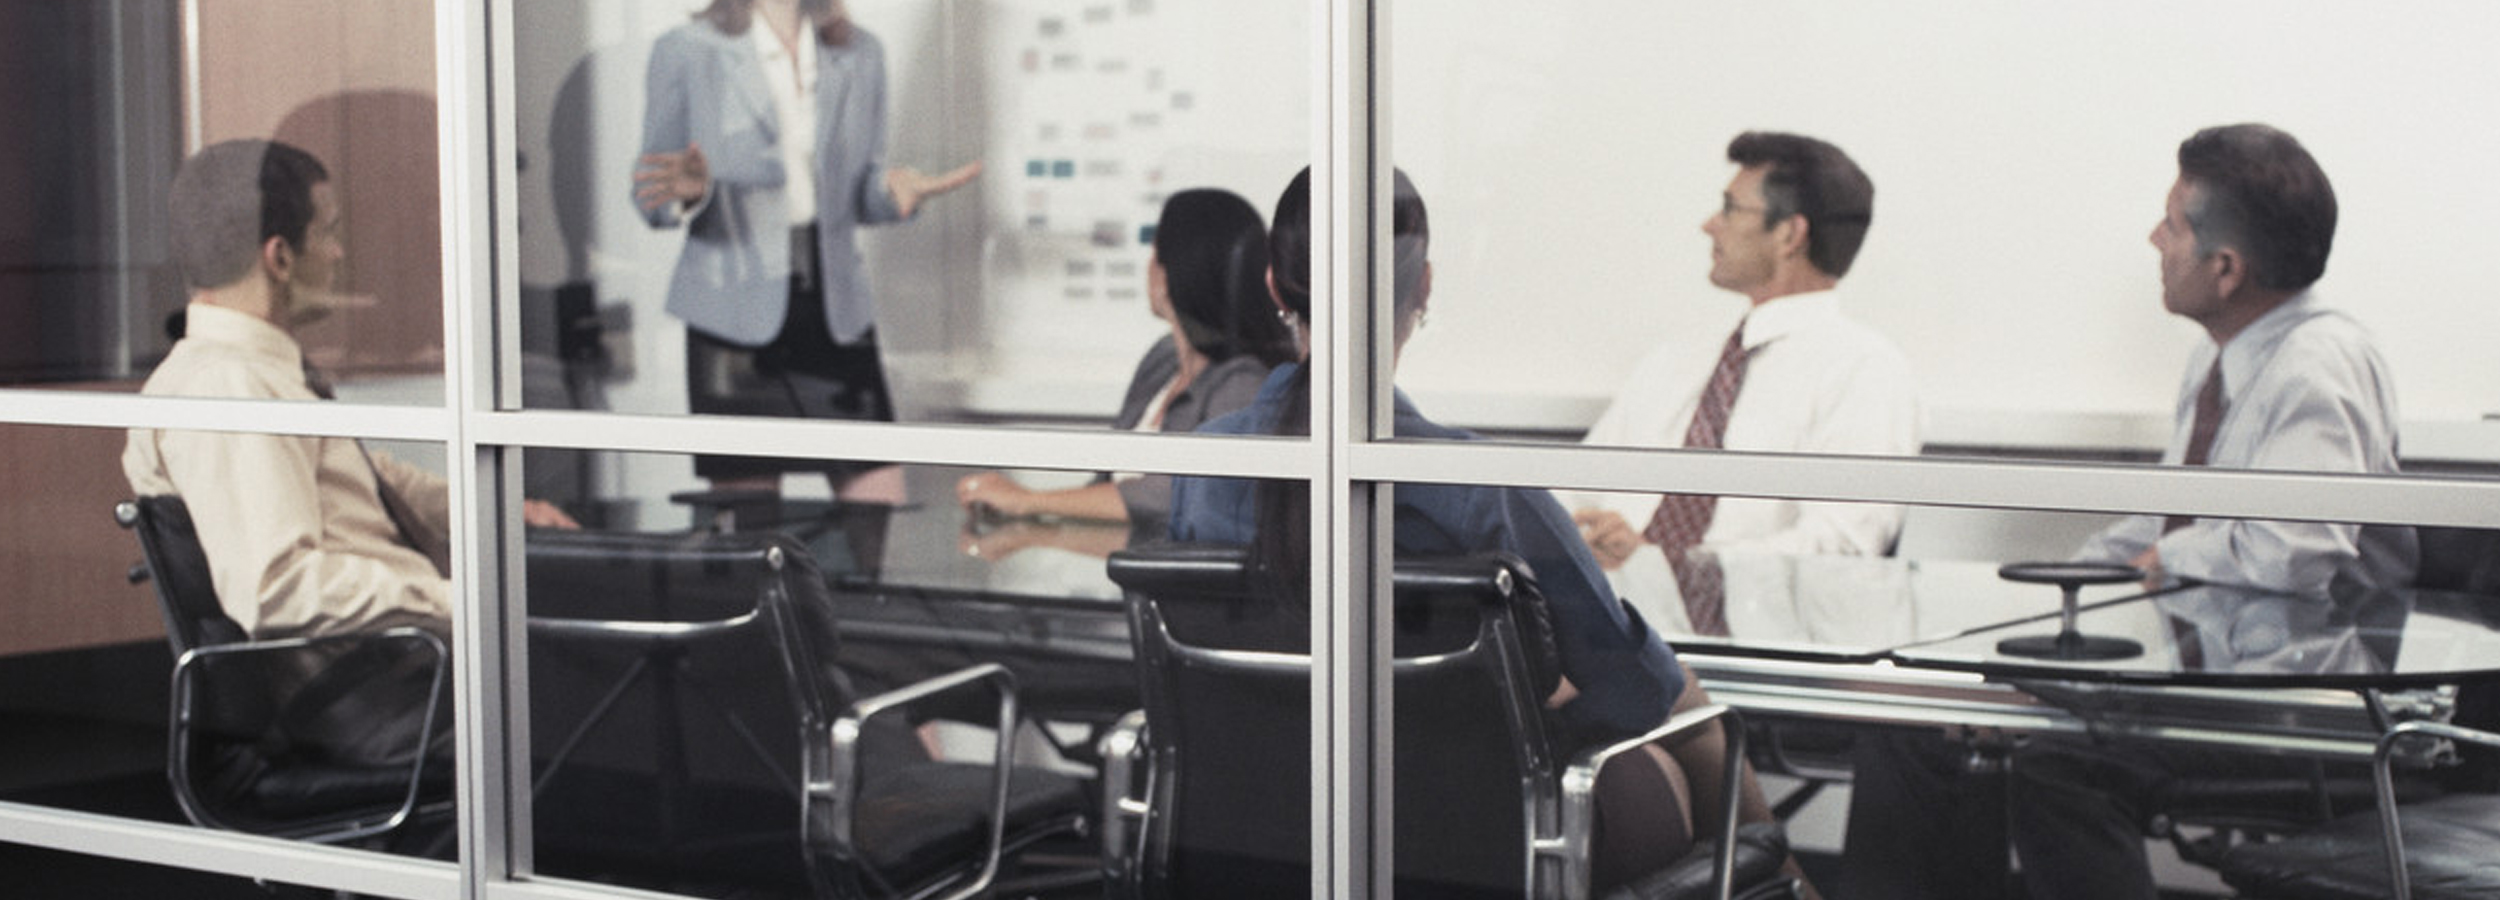 Businesspeople in Meeting --- Image by © Royalty-Free/Corbis